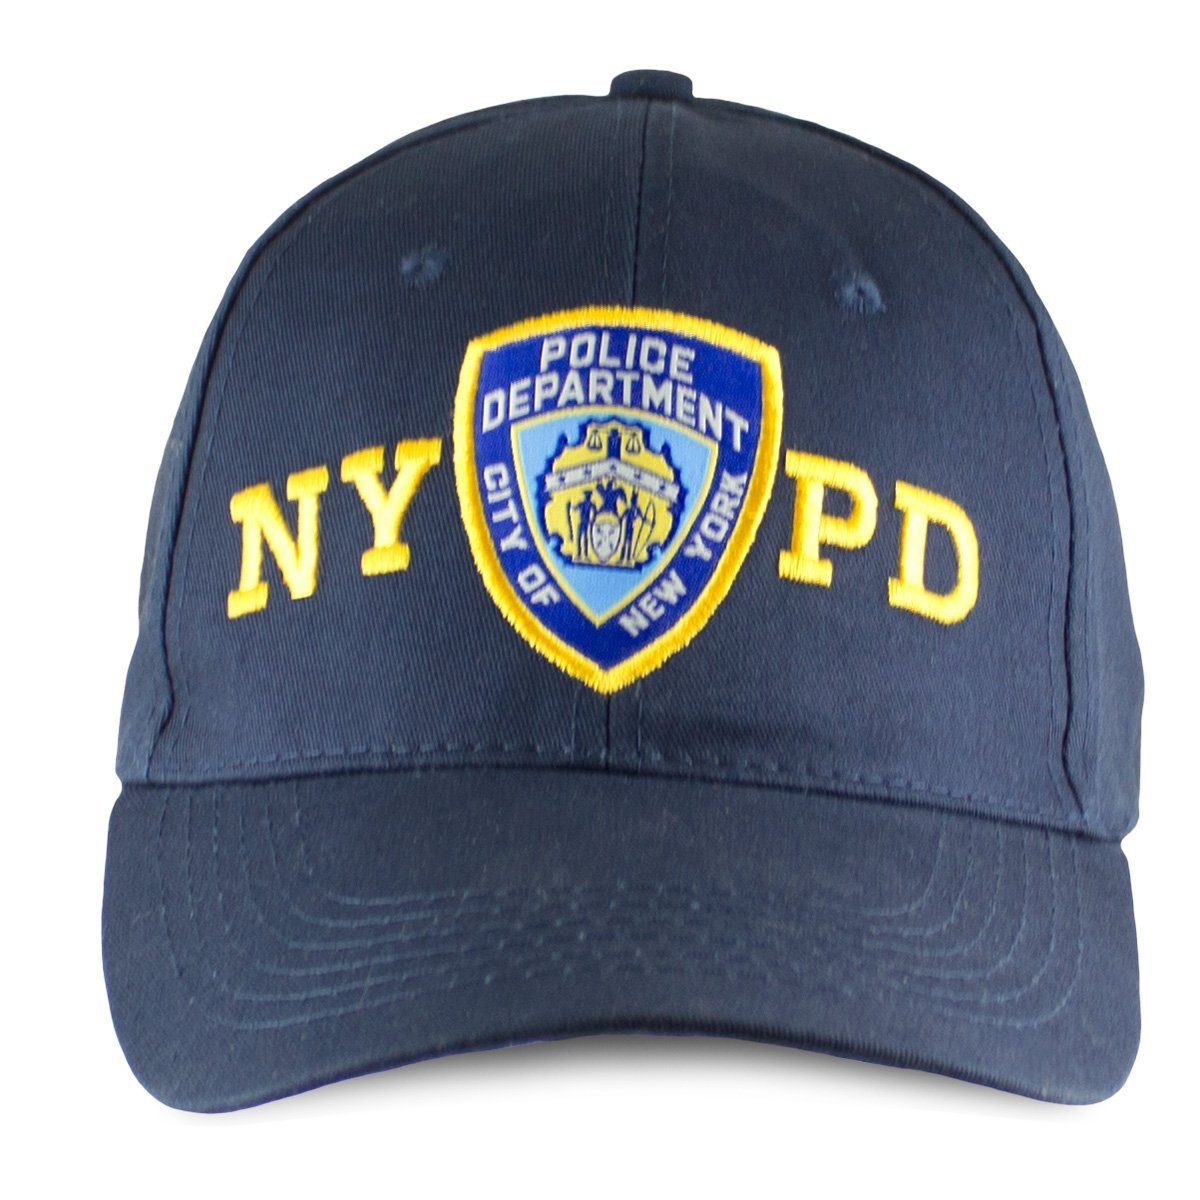 Officially Licensed NYPD Adjustable Cap With Emblem | UKMCPro